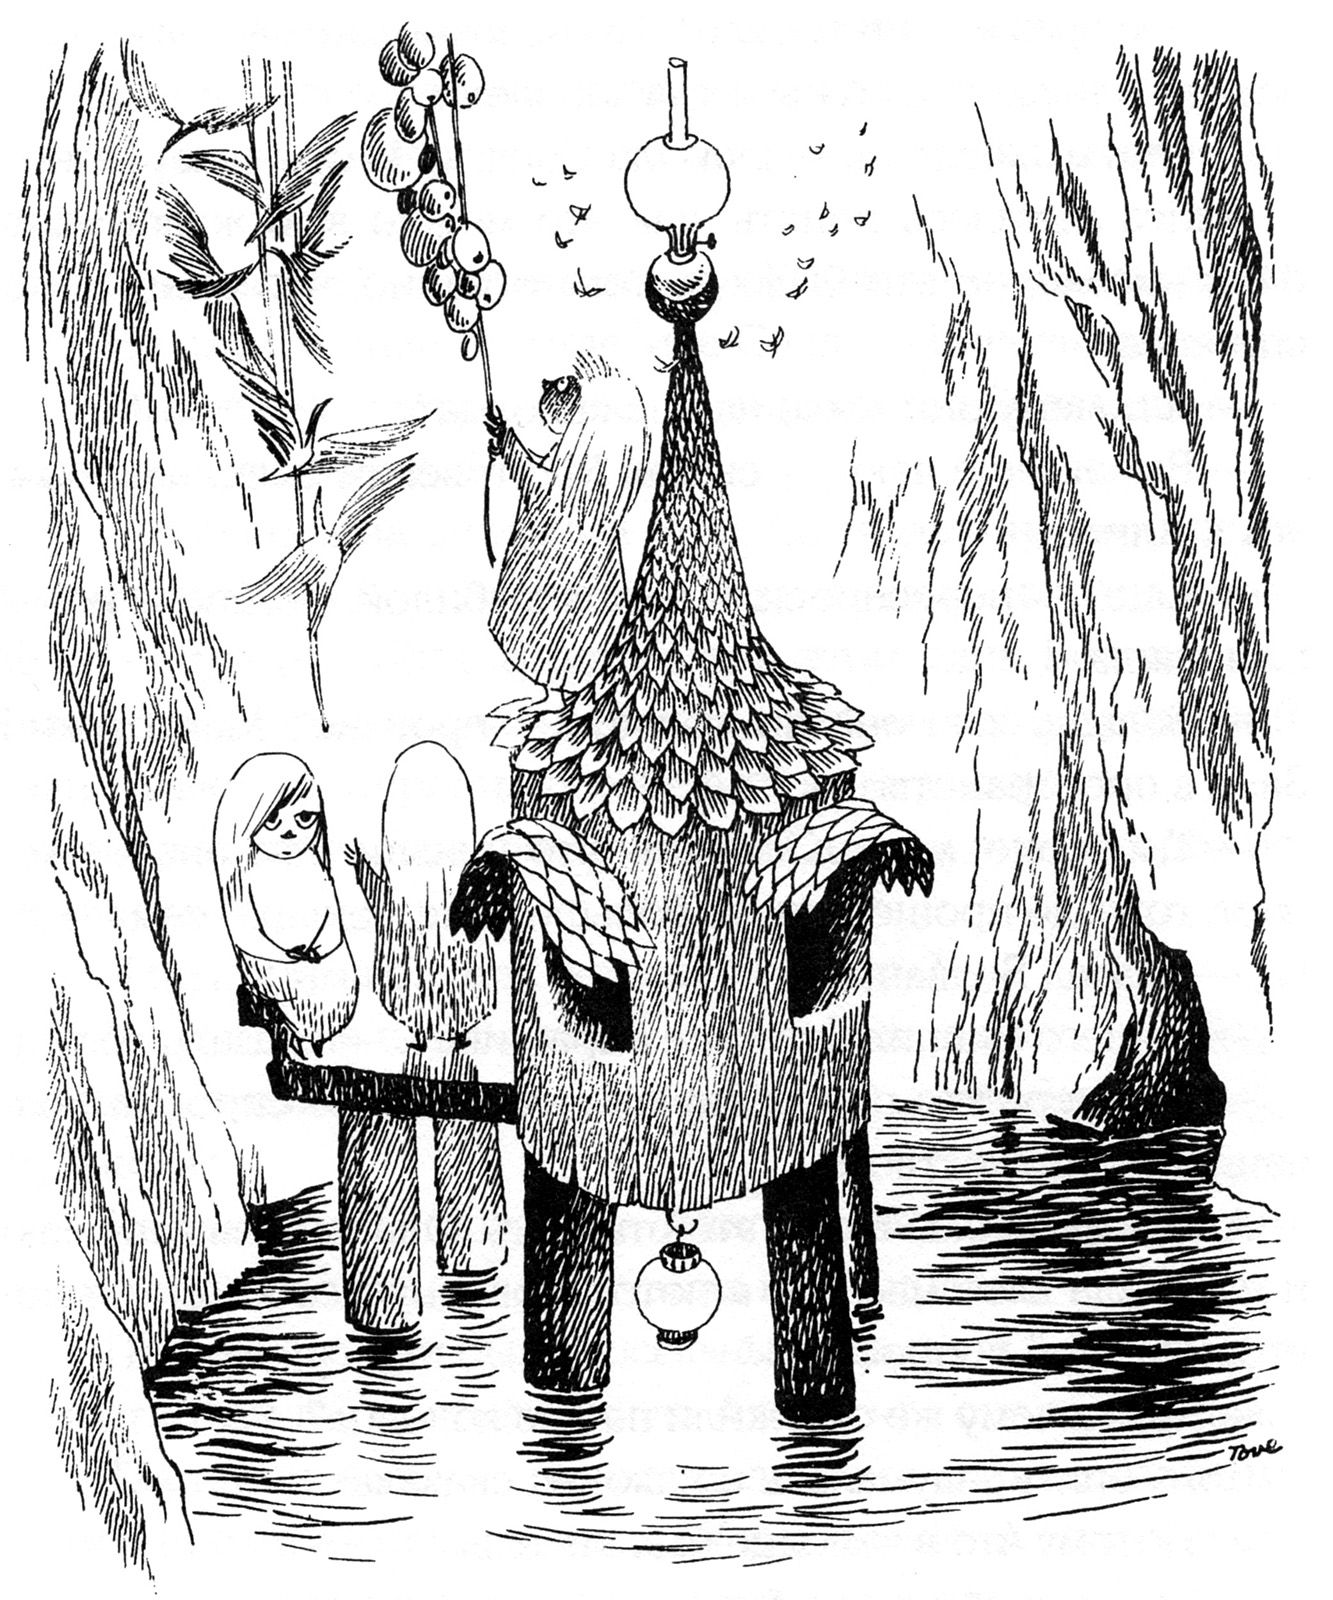 tove jansson illustration - Google Search